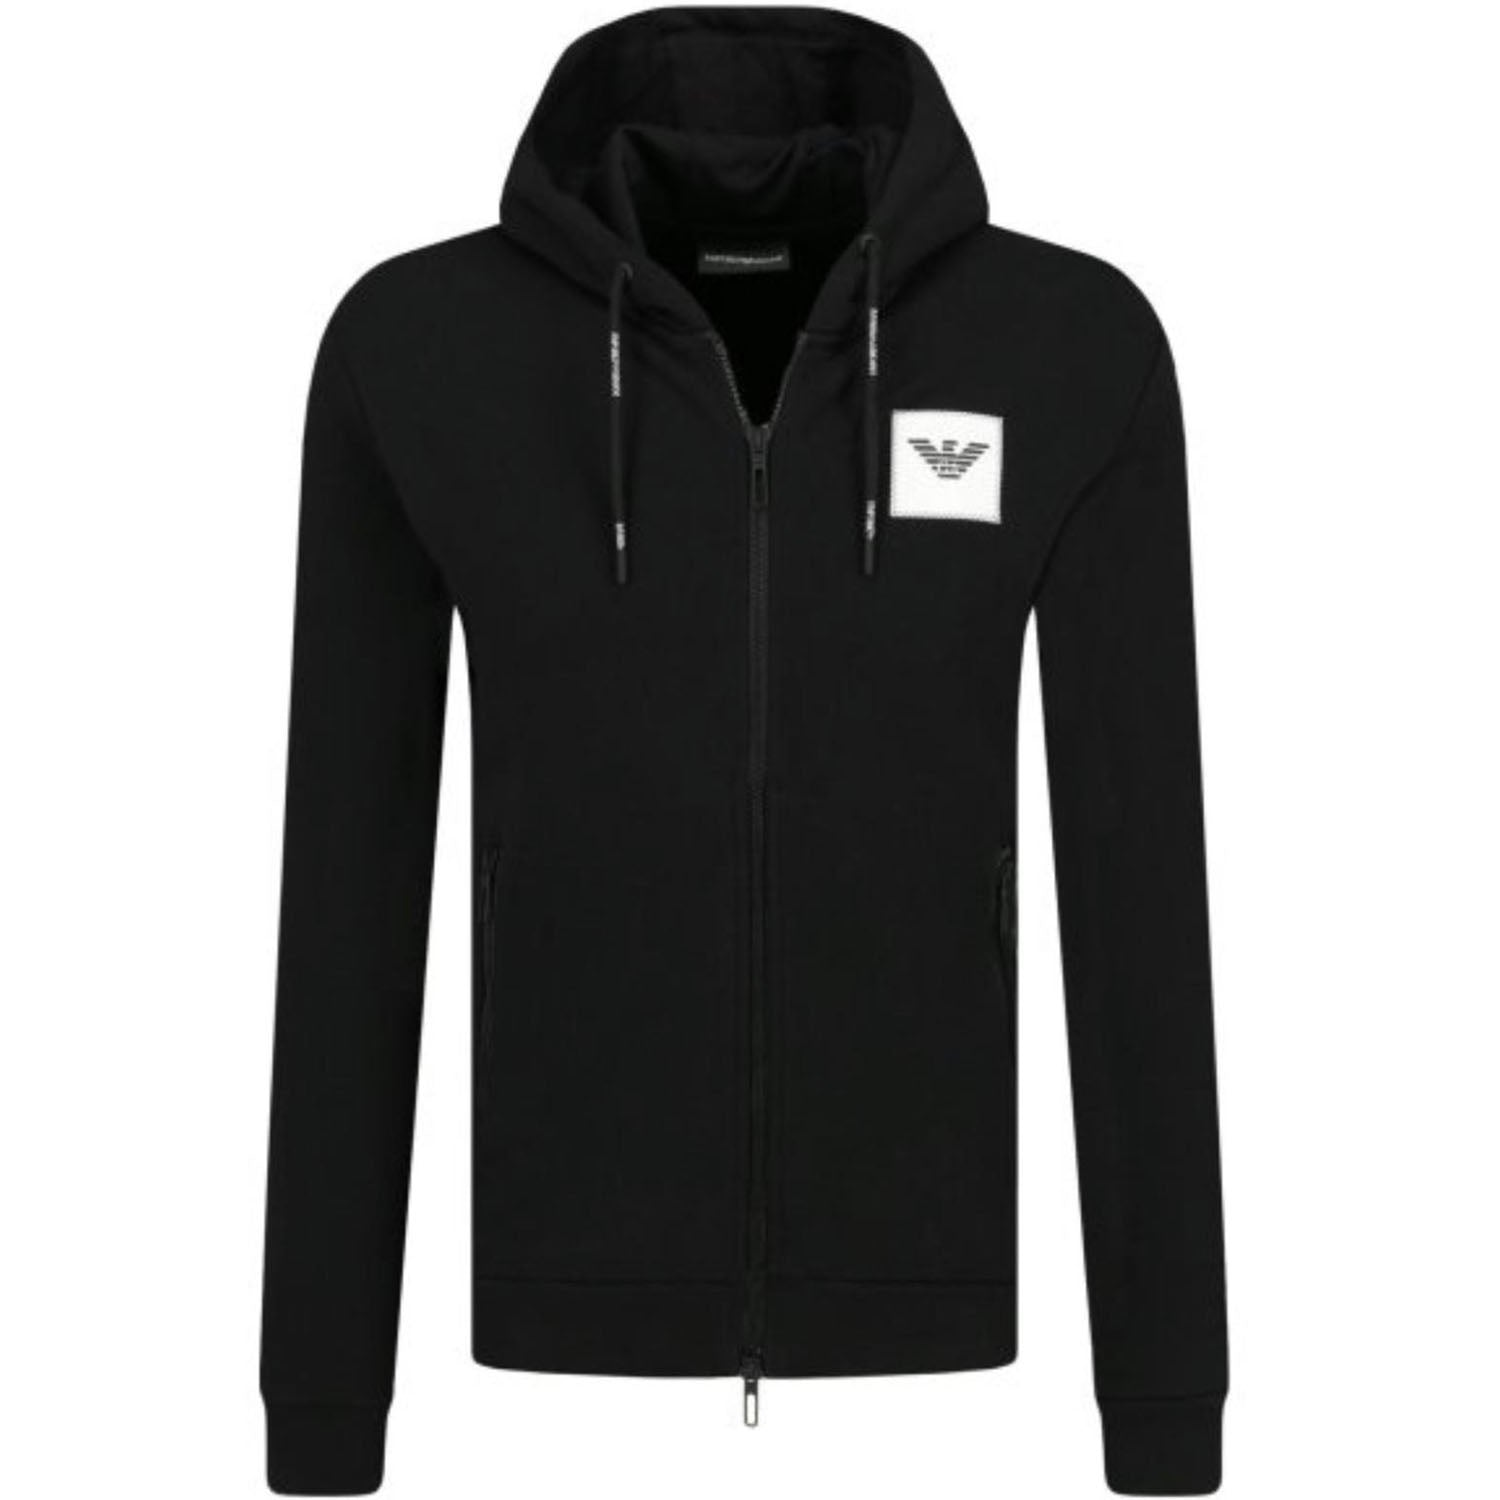 Emporio Armani Hooded Zip up Sweatshirt